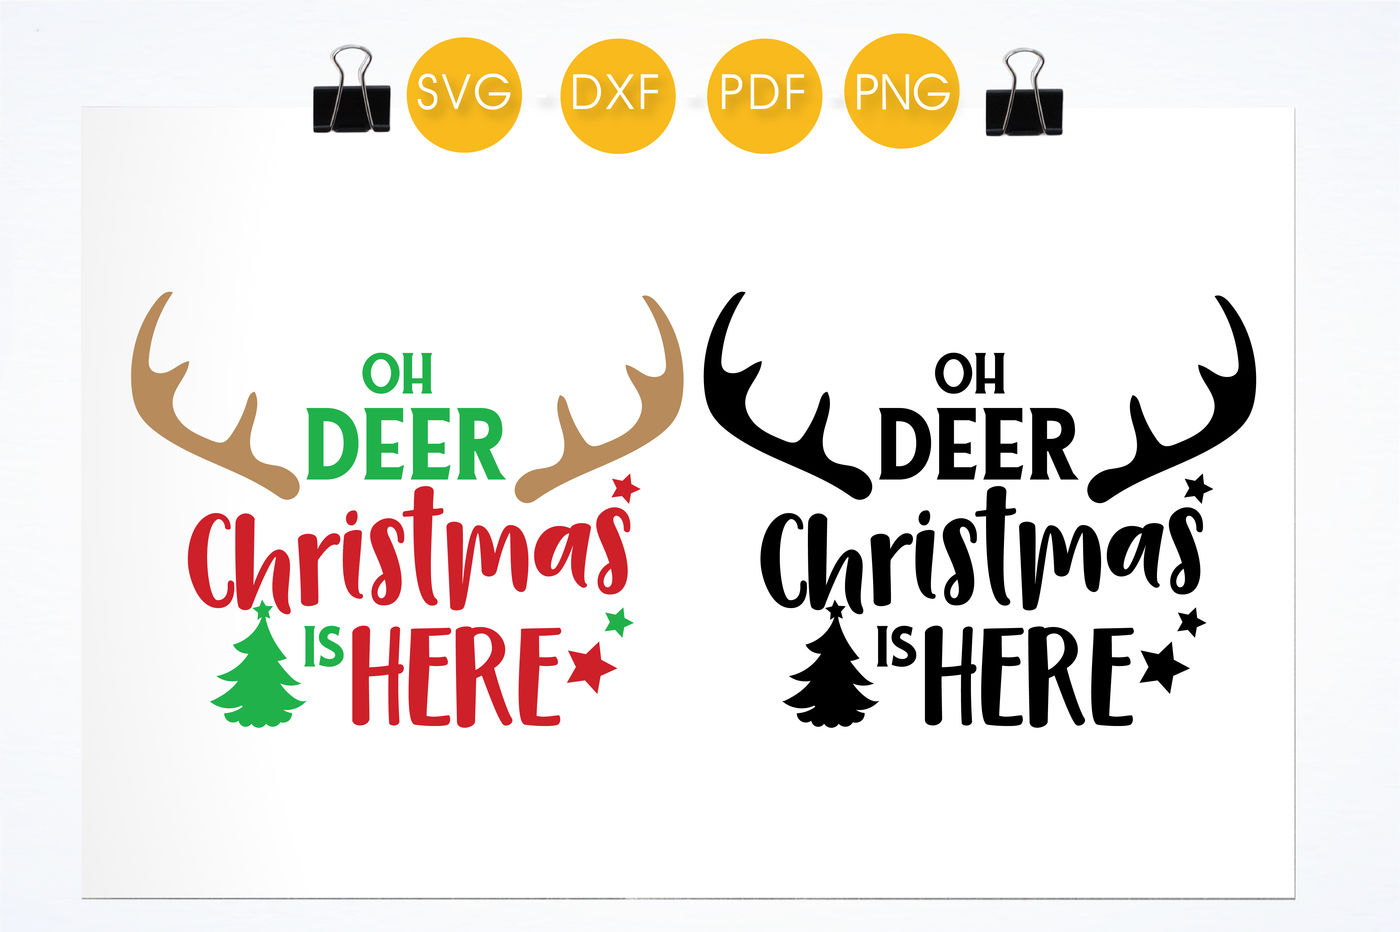 Oh Deer Christmas Is Here Svg Png Eps Dxf Cut File By Prettycuttables Thehungryjpeg Com